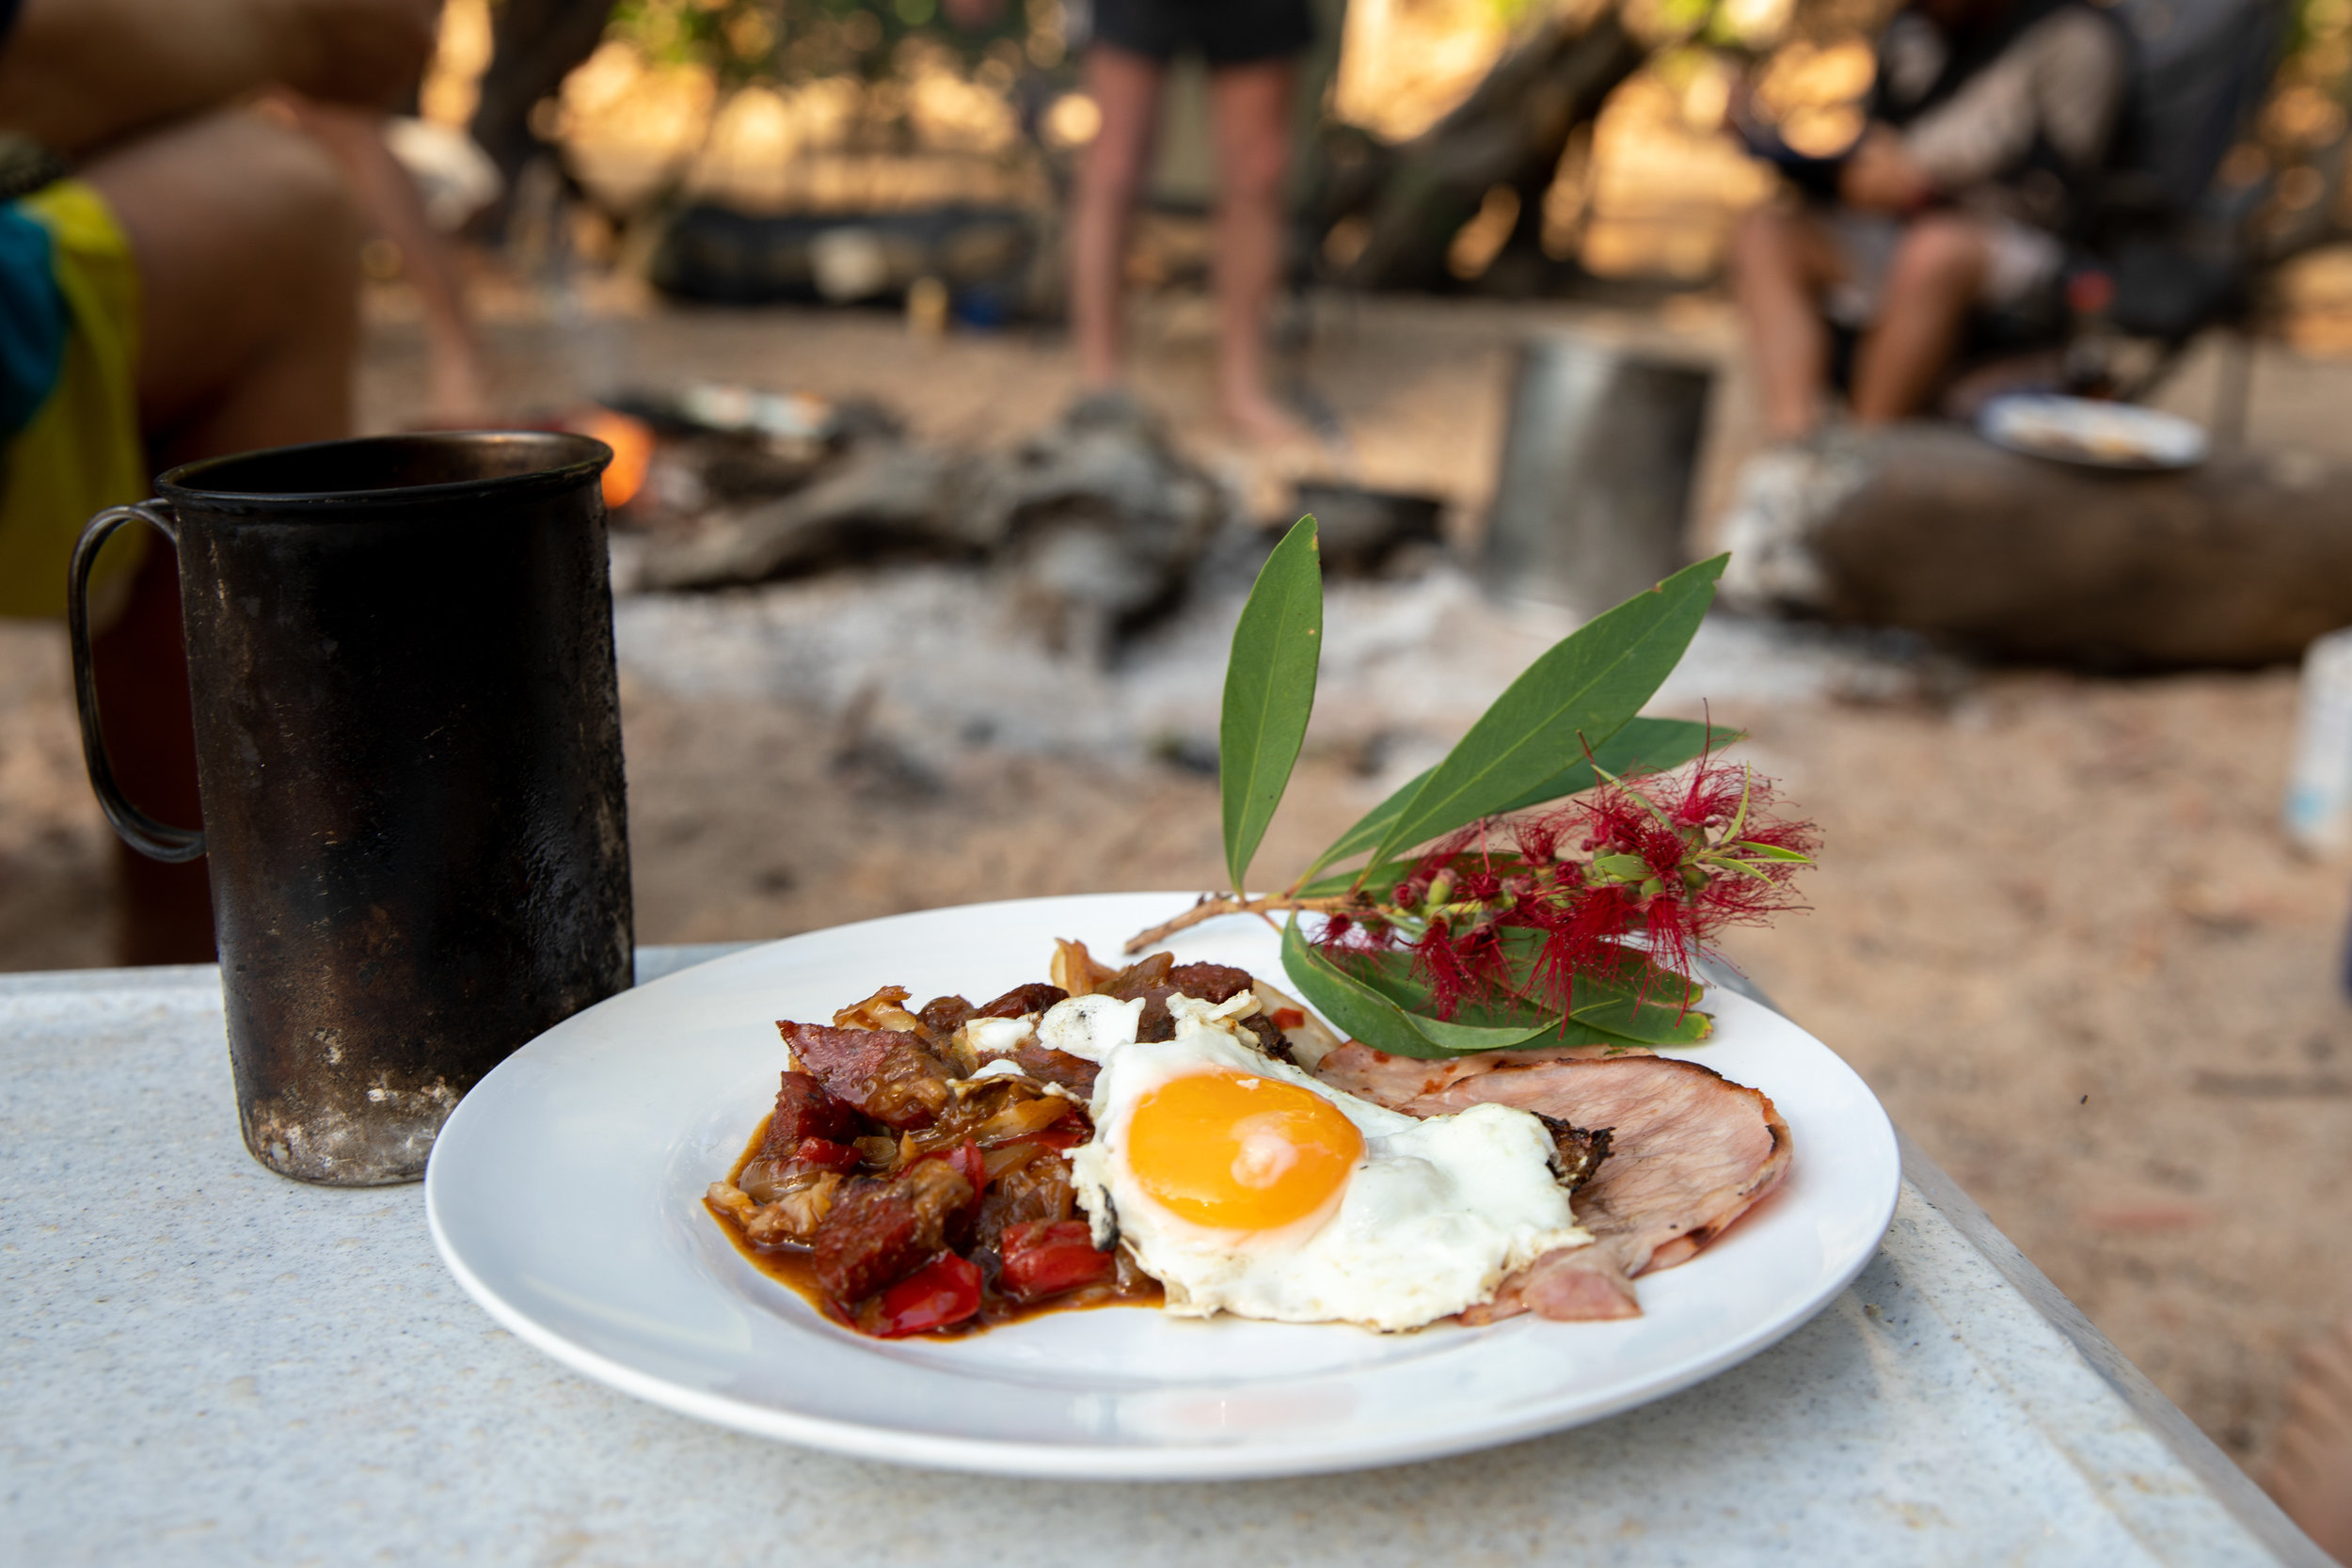 Love the simple things? - Sit back in the serenity and enjoy the classic outdoor Aussie breakfast on our camp adventures!